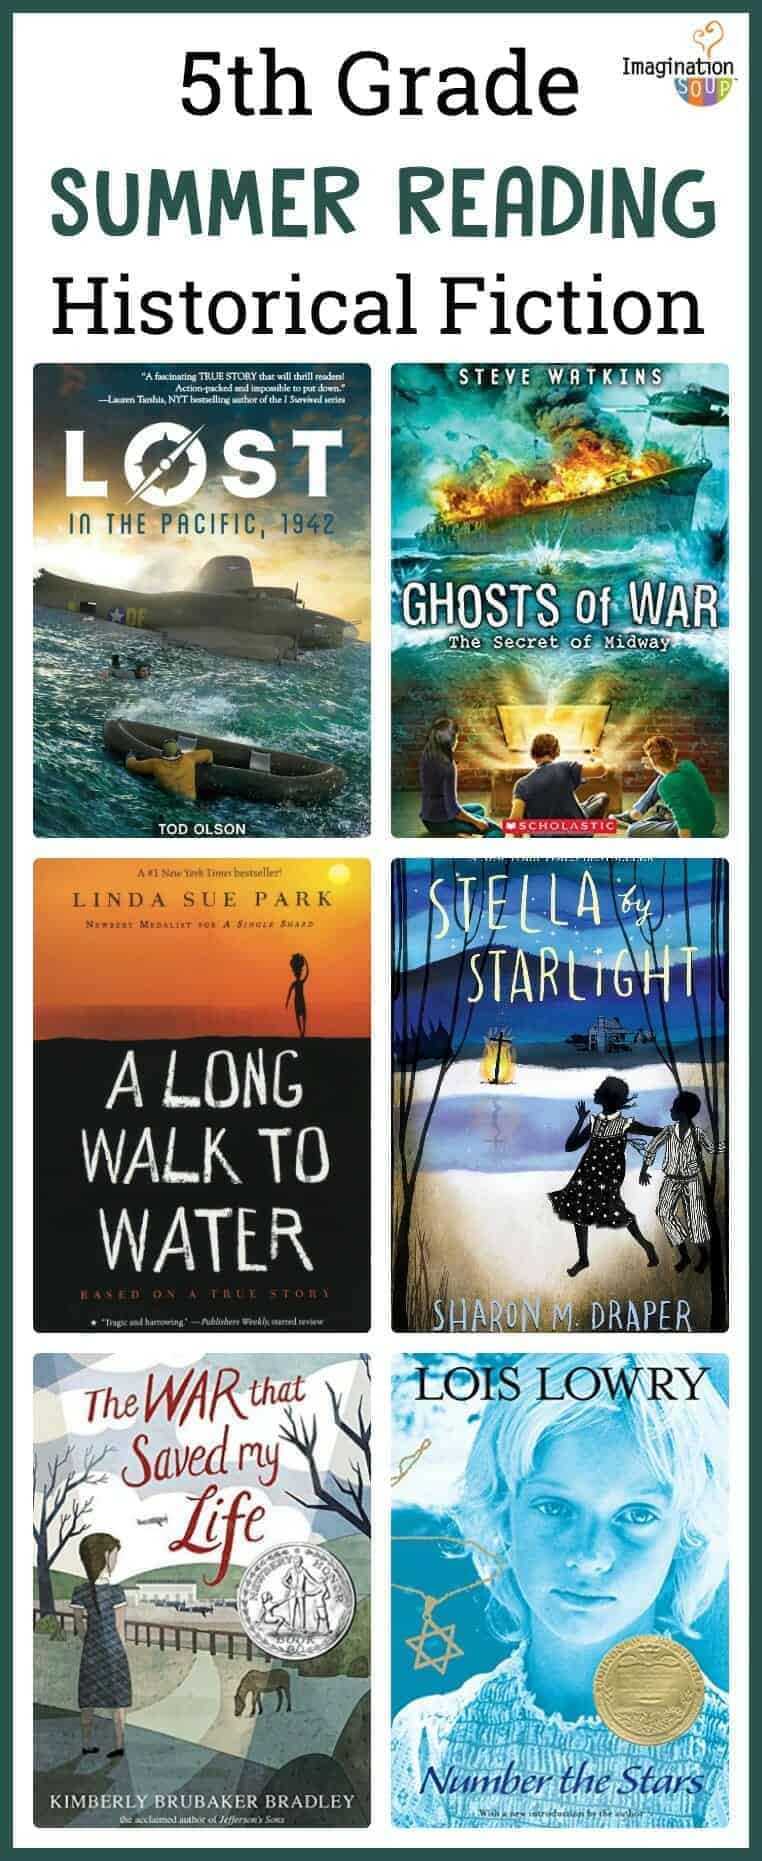 5th grade summer reading book list - historical fiction